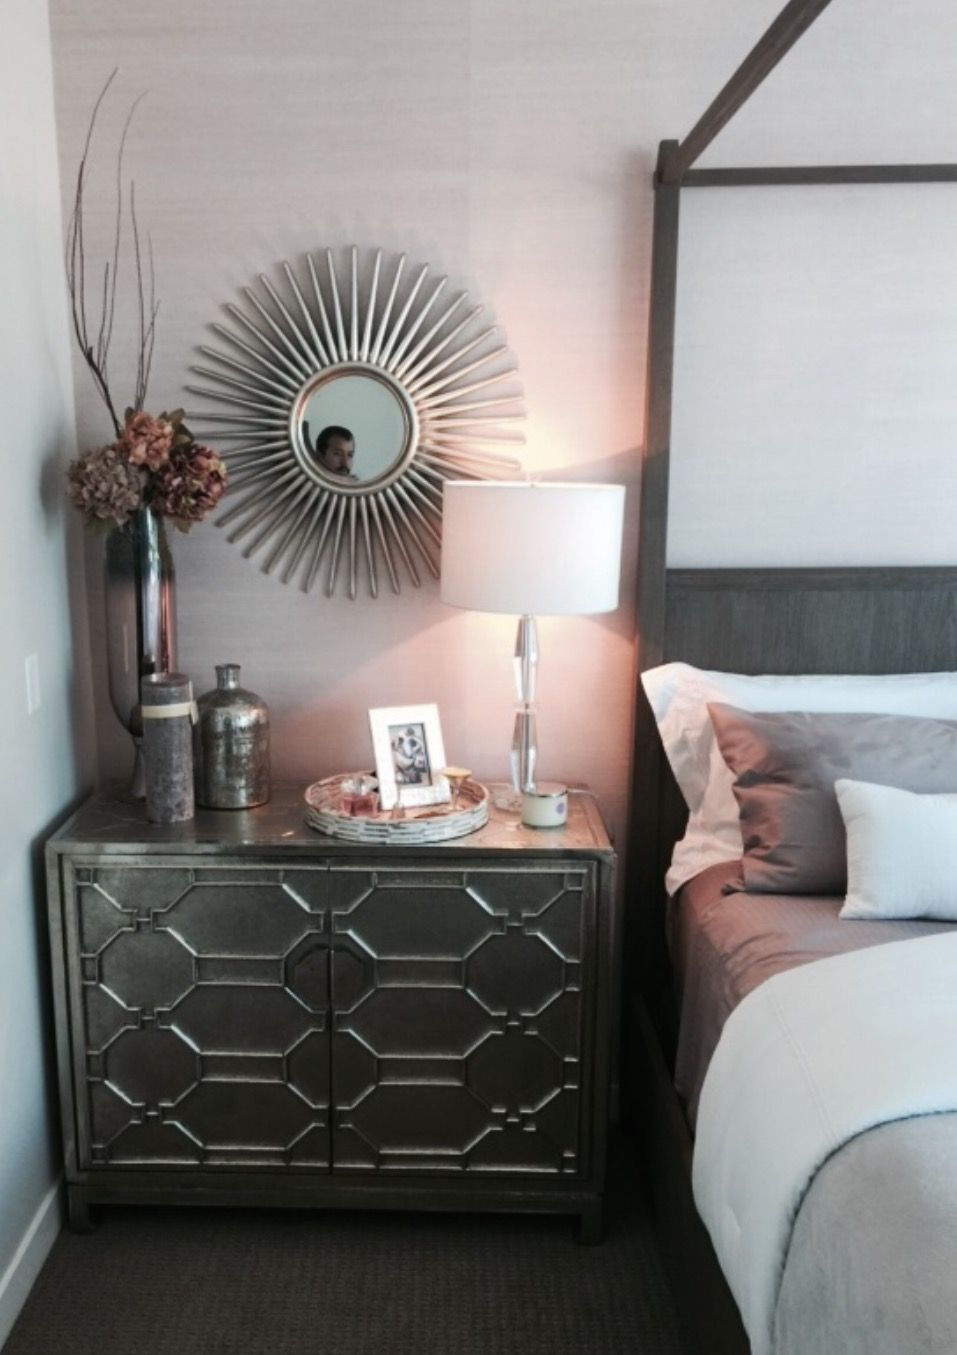 Exceptional Transitional Bedroom Design For Fitness Model Paige Hathaway Designed By Orange  County Interior Designer Chris Givan